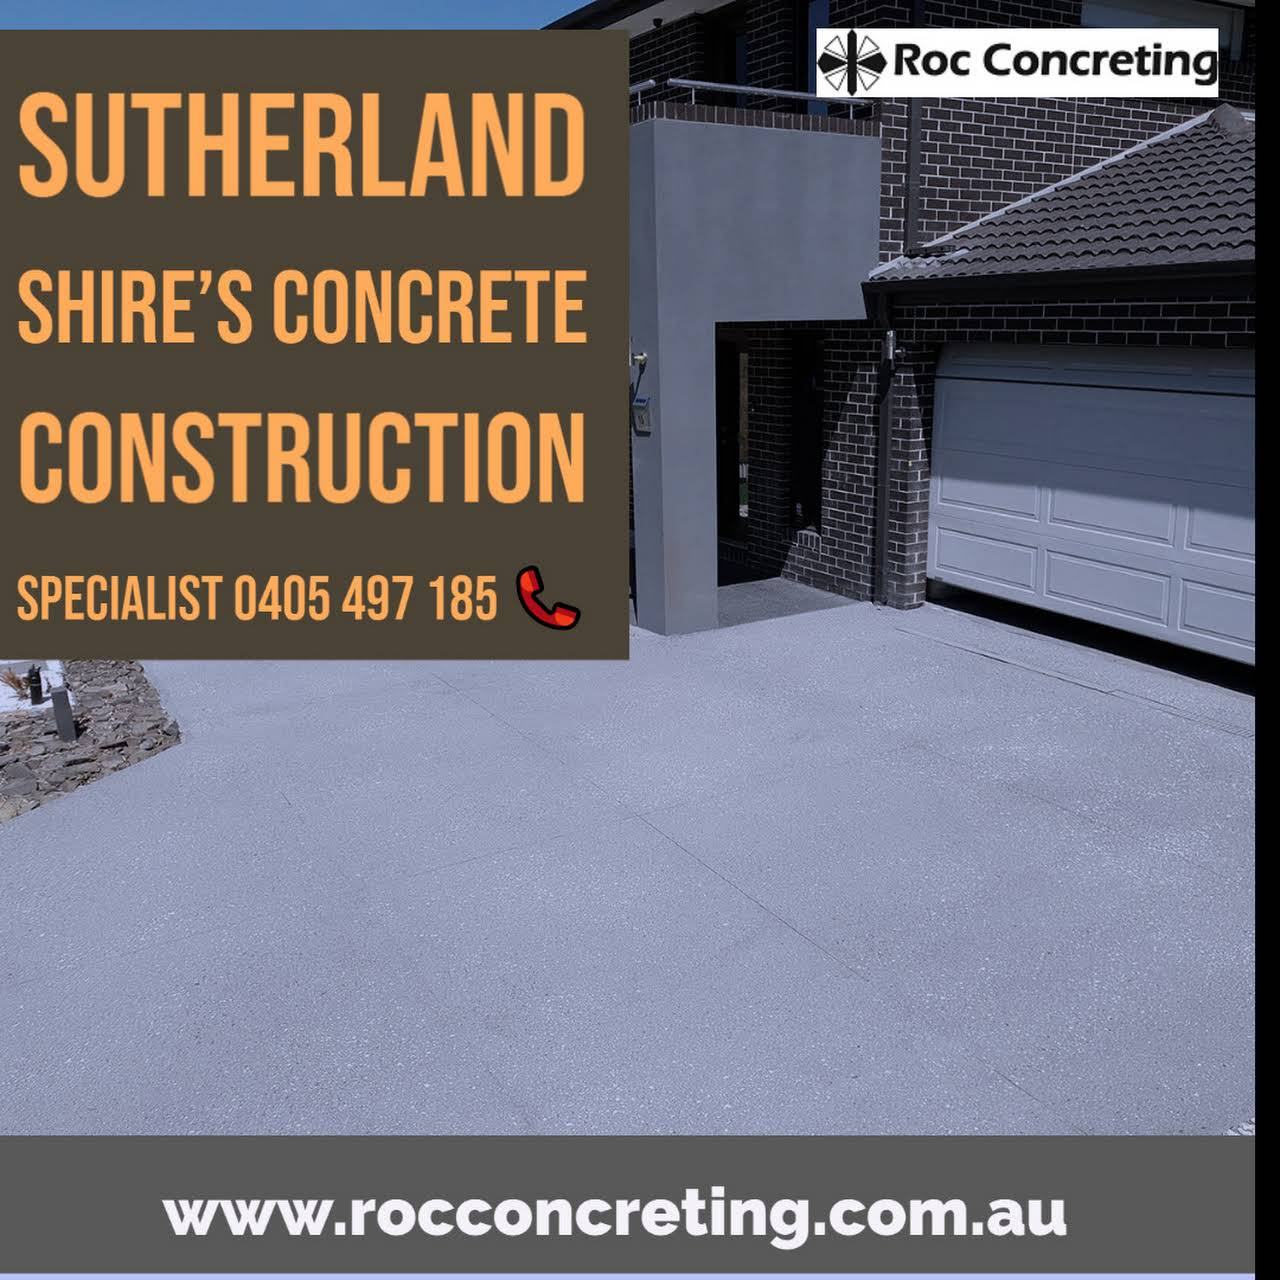 shire concreterspicture shire nsw concreterspicture concrete company sutherland shireimage